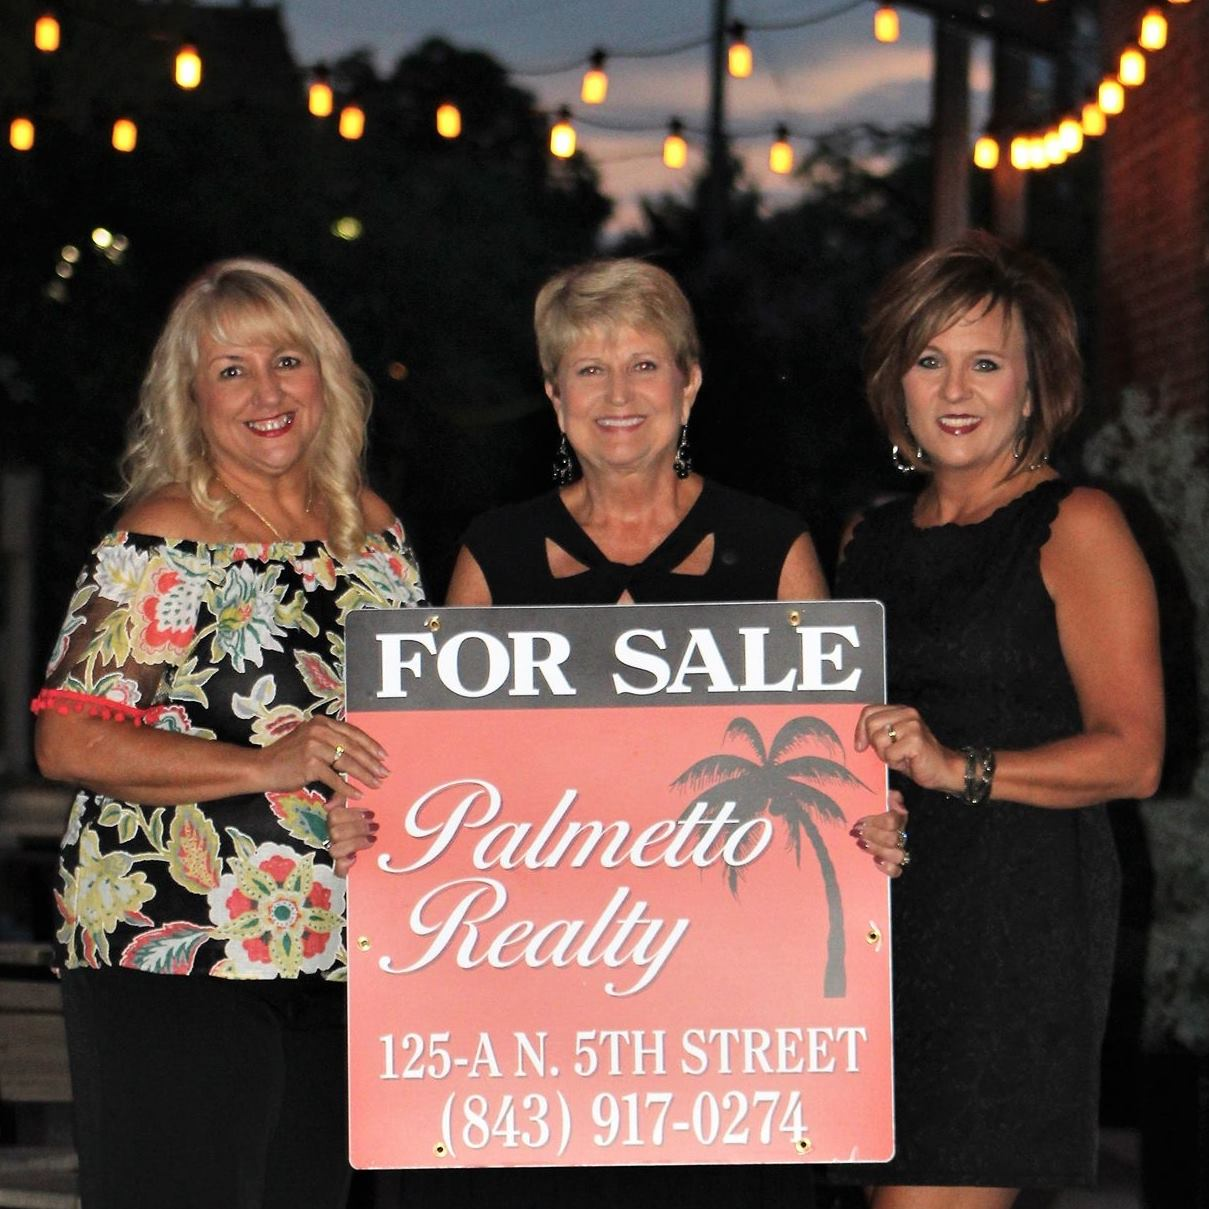 mhs-palmetto-realty